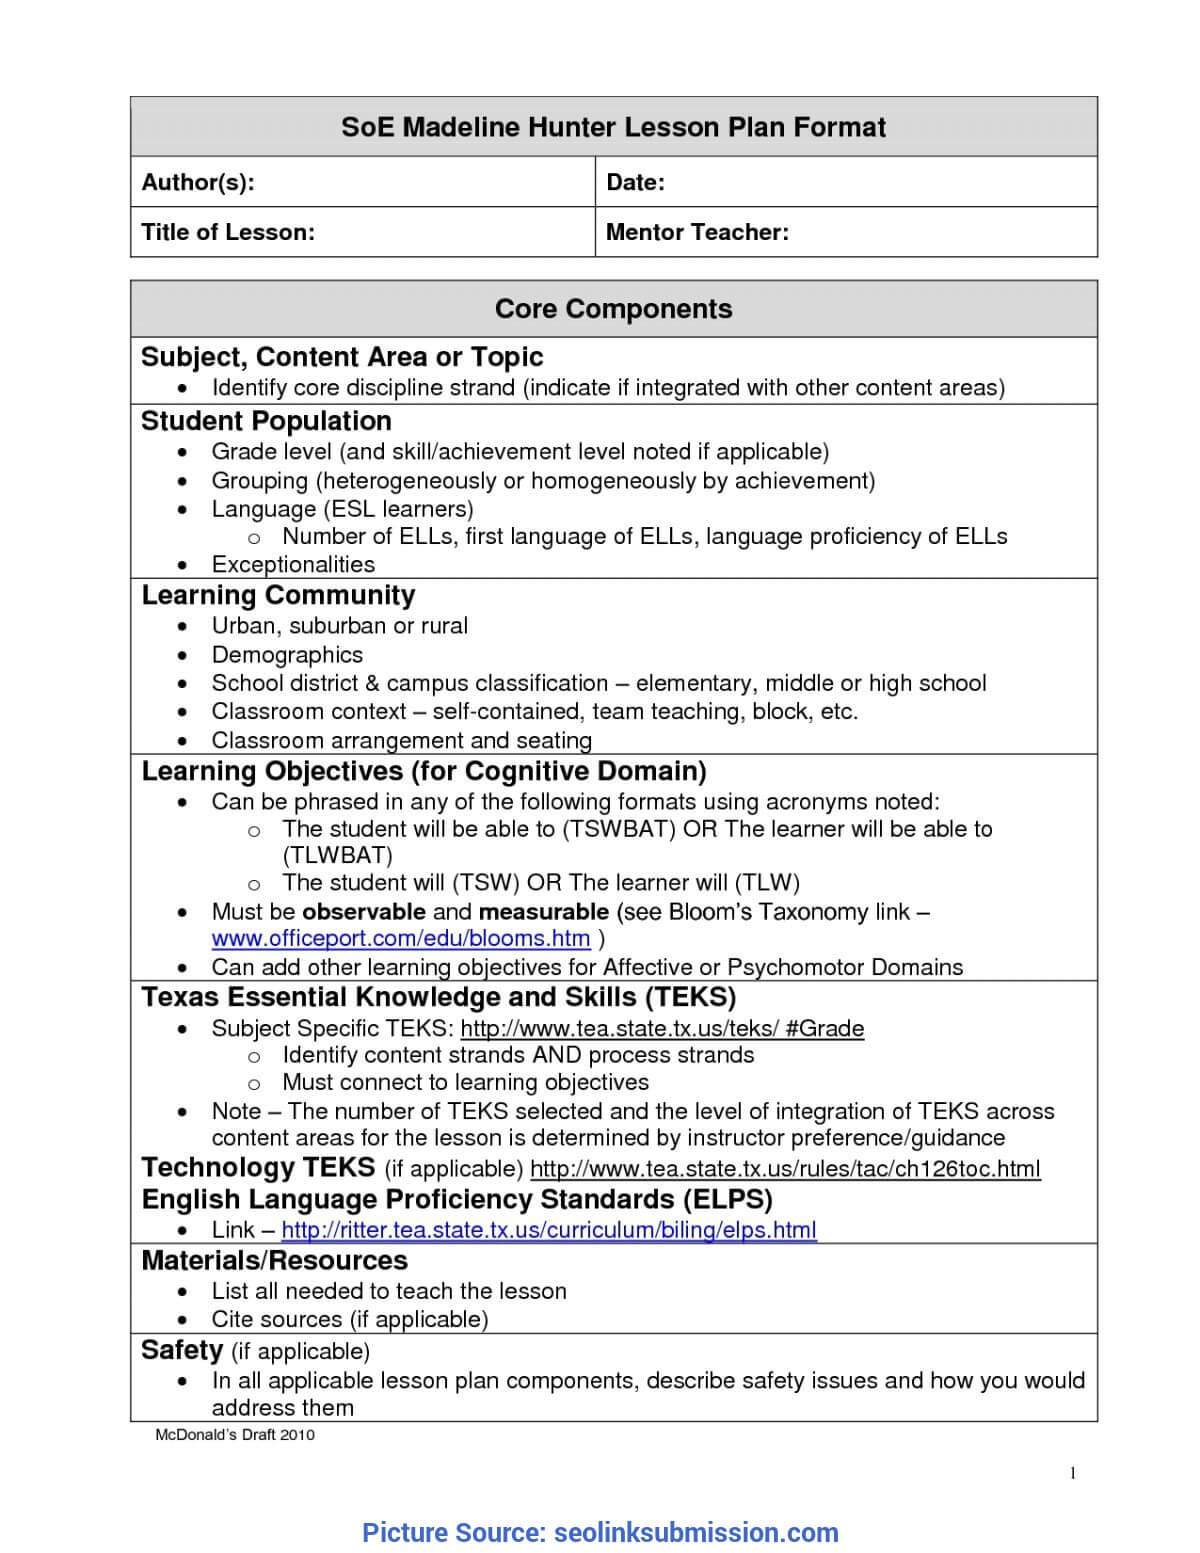 Unusual A Modern Version Of Madeline Hunter Lesson Plan pertaining to Madeline Hunter Lesson Plan Template Blank